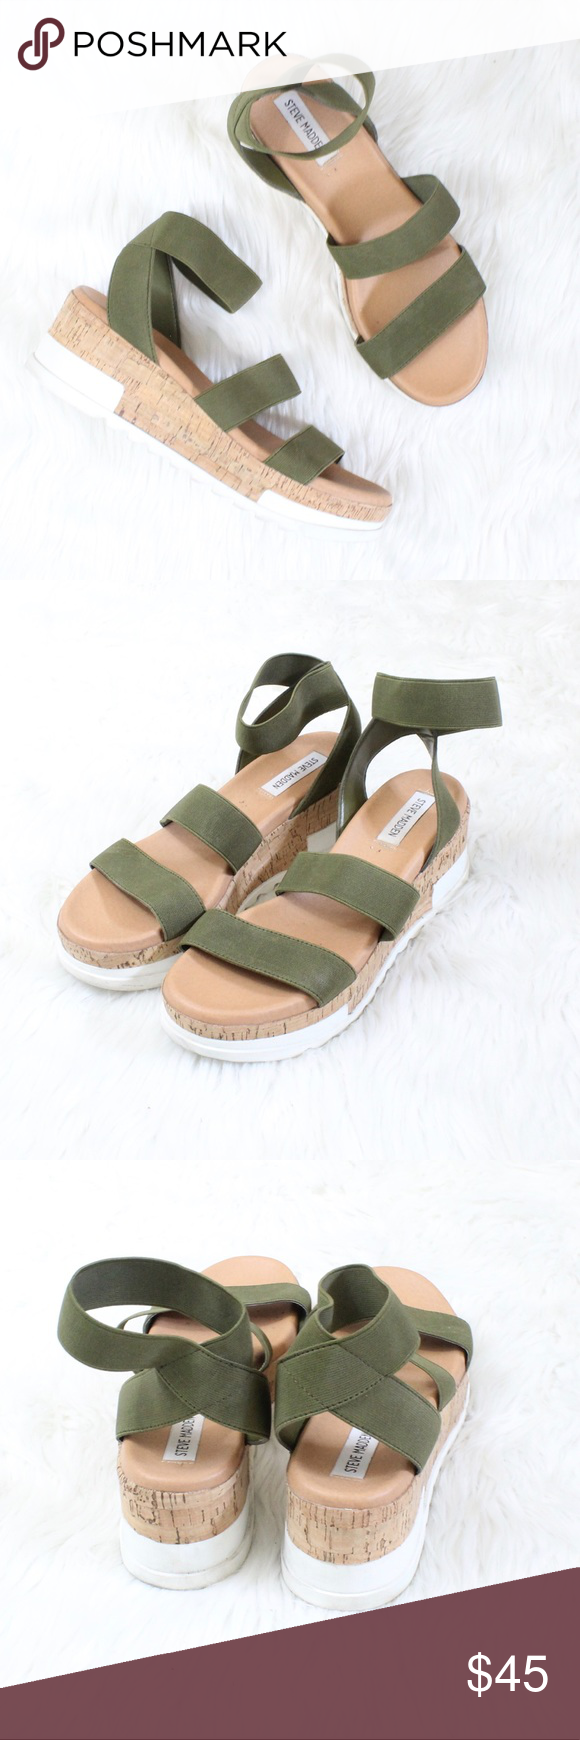 82b7de9012d STEVE MADDEN Bandi Platform Wedge Sandal in Olive Worn once! Size  8.5  Color